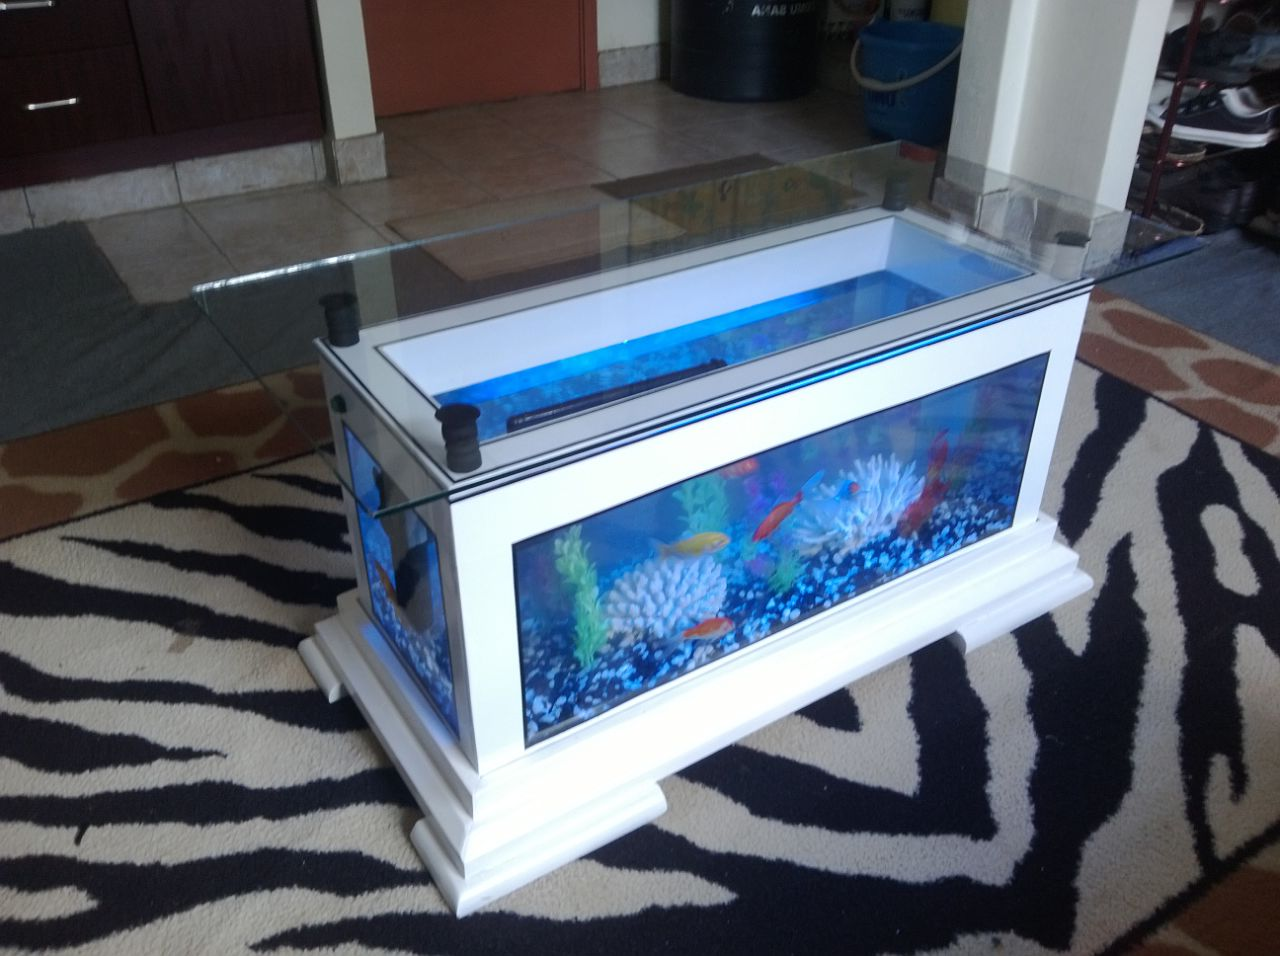 Columns For Sale >> Aquarium Coffee Table For Sale | Roy Home Design